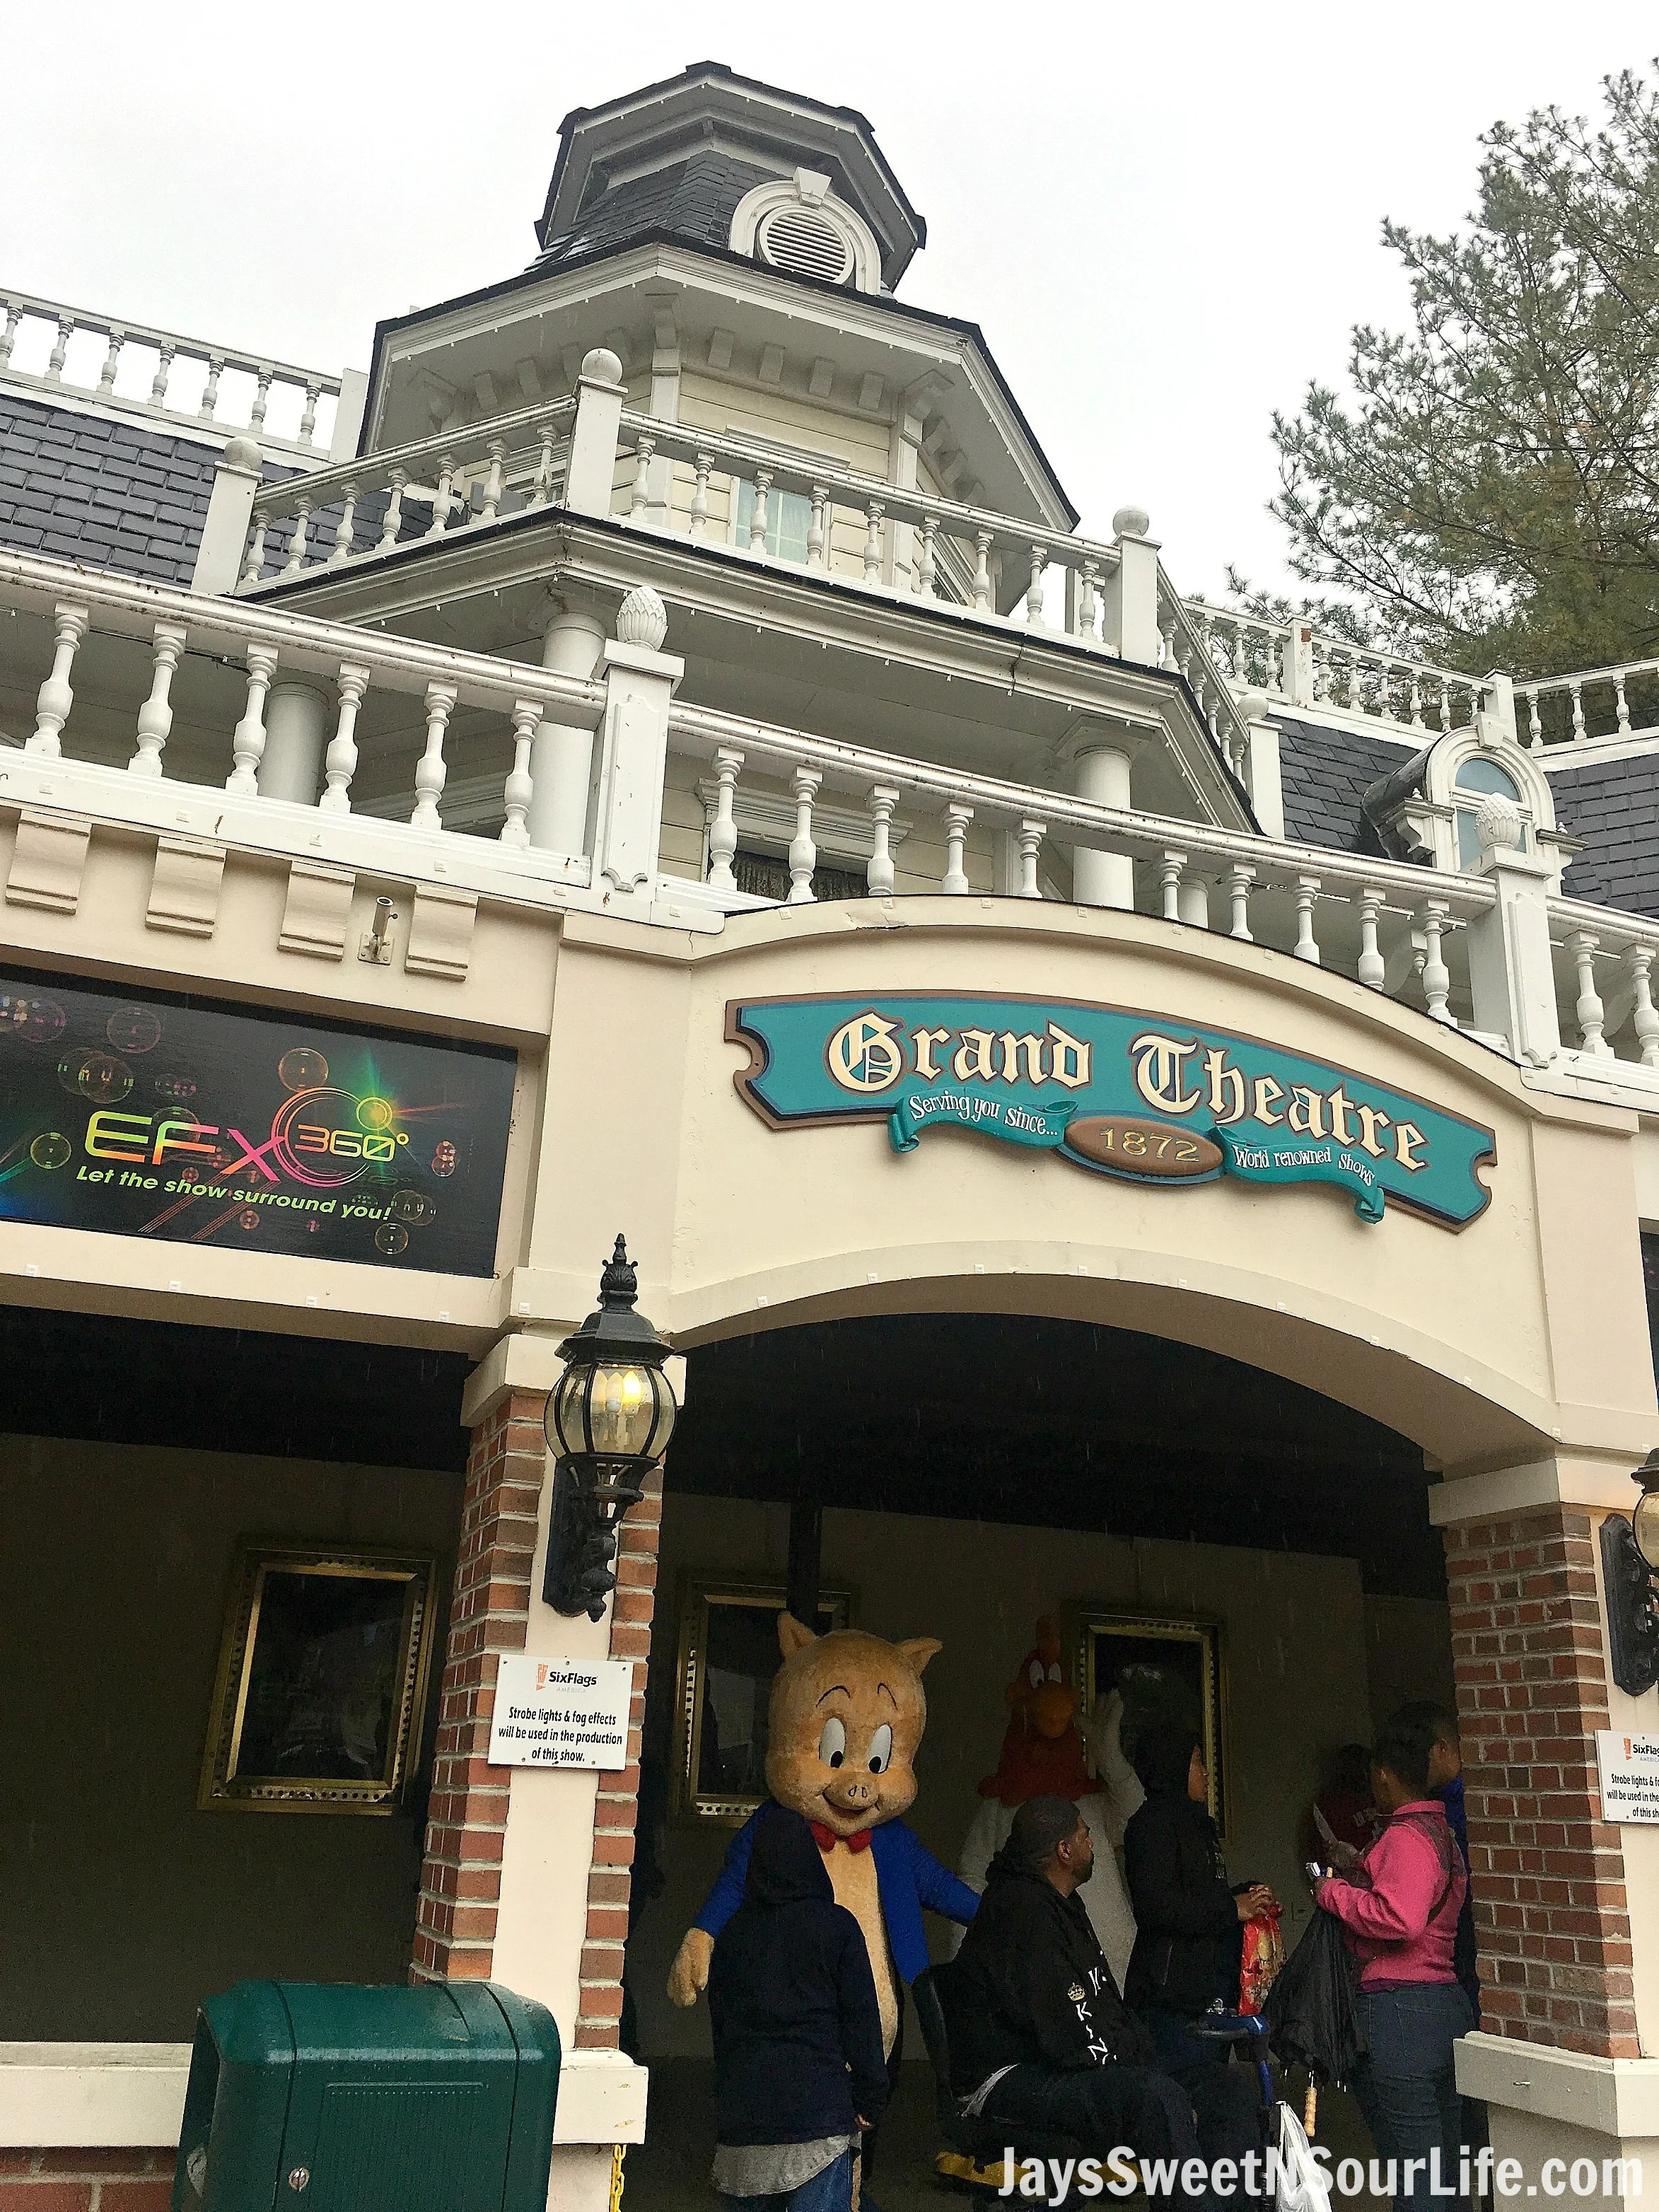 8 Tips For Rainy Day Fun At Six Flags America Theater. If you are planning a trip to Six Flags America and realized the weather calls for rain don't cancel your plans! These 8 Tips For Rainy Day Fun At Six Flags America will save the day.